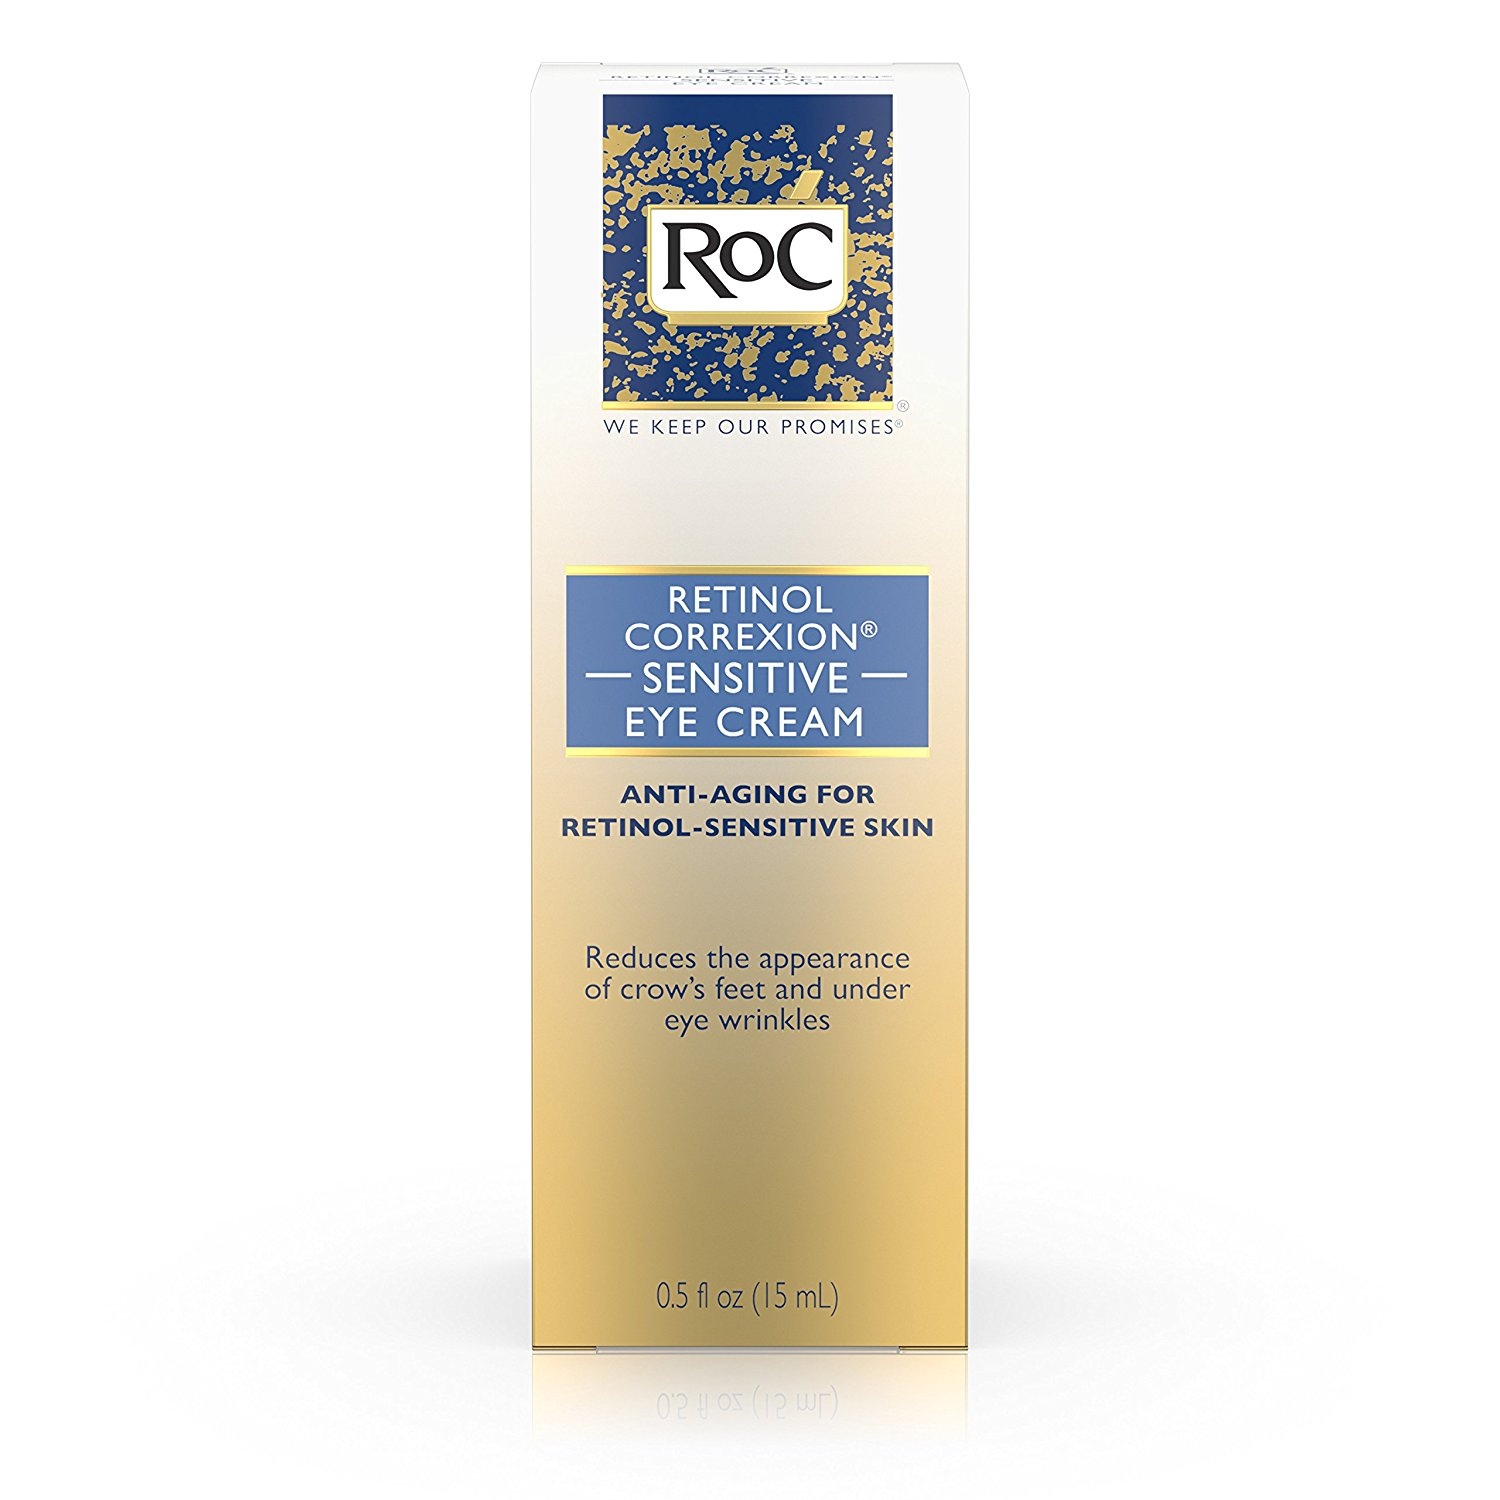 RoC® Retinol Correxion® Eye Cream.Image credit: Amazon.